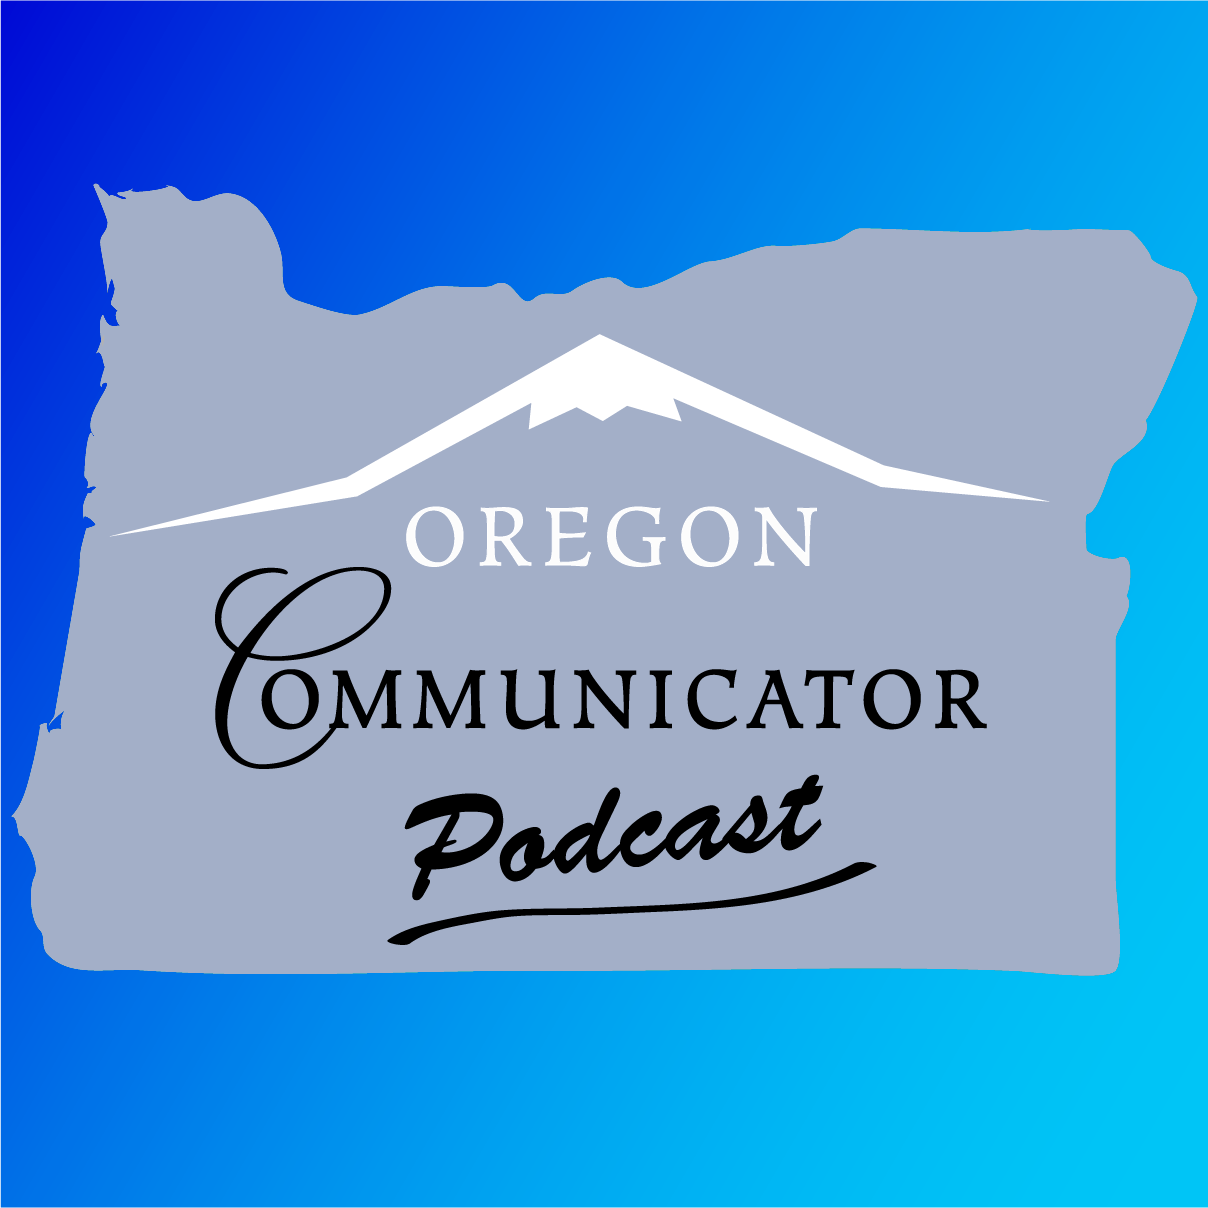 Oregon Communicator Podcast